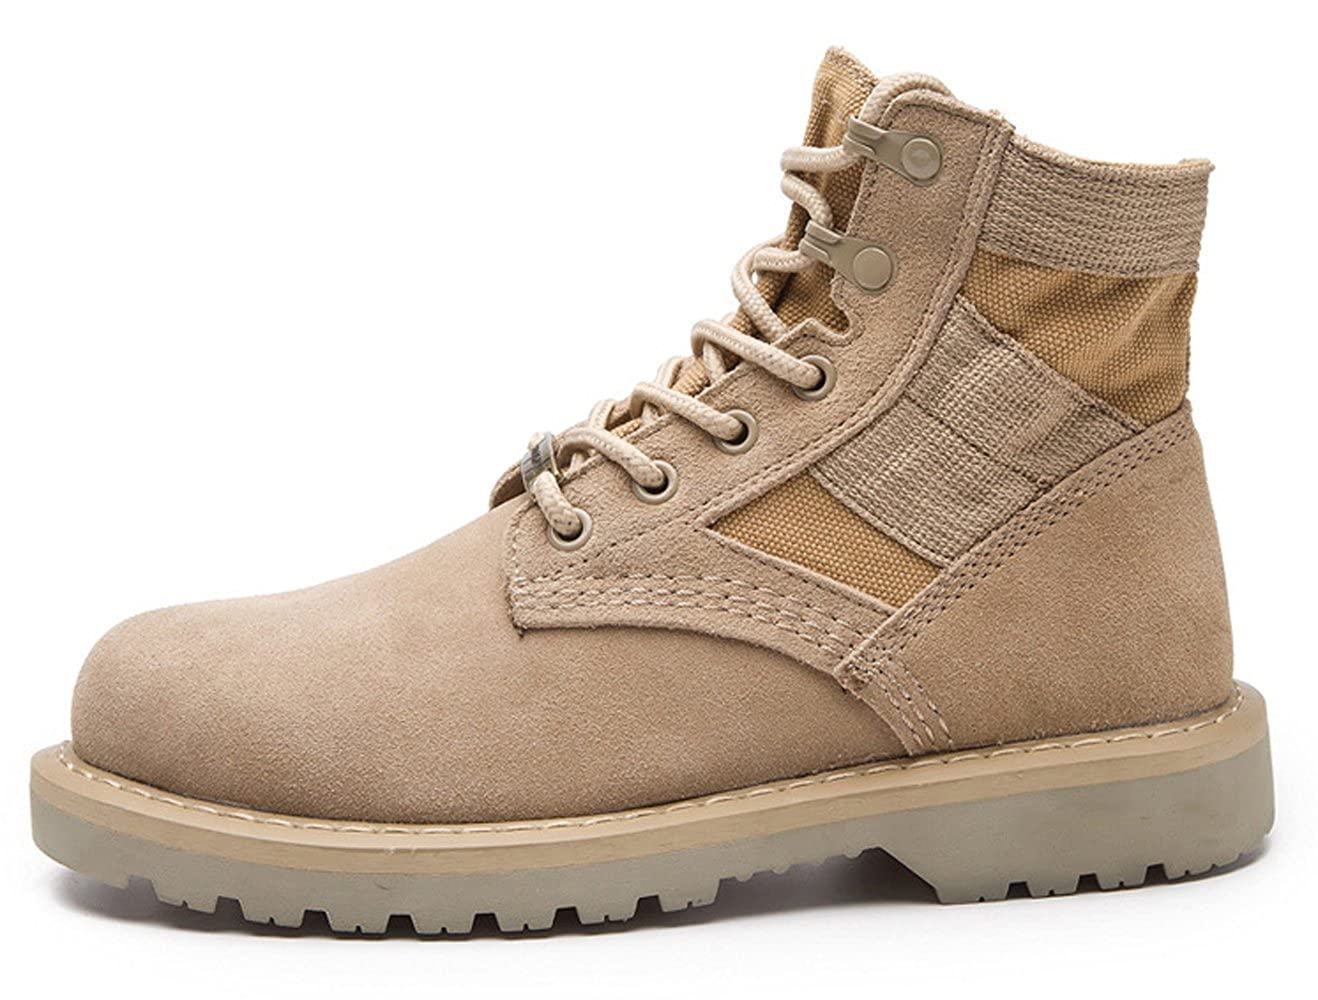 Amazon.com | Military Tactical Boots Suede Desert Army Combat Jungle Boots Lace Up Martin Boots Boots Chukka Snow Boot for Men | Chukka